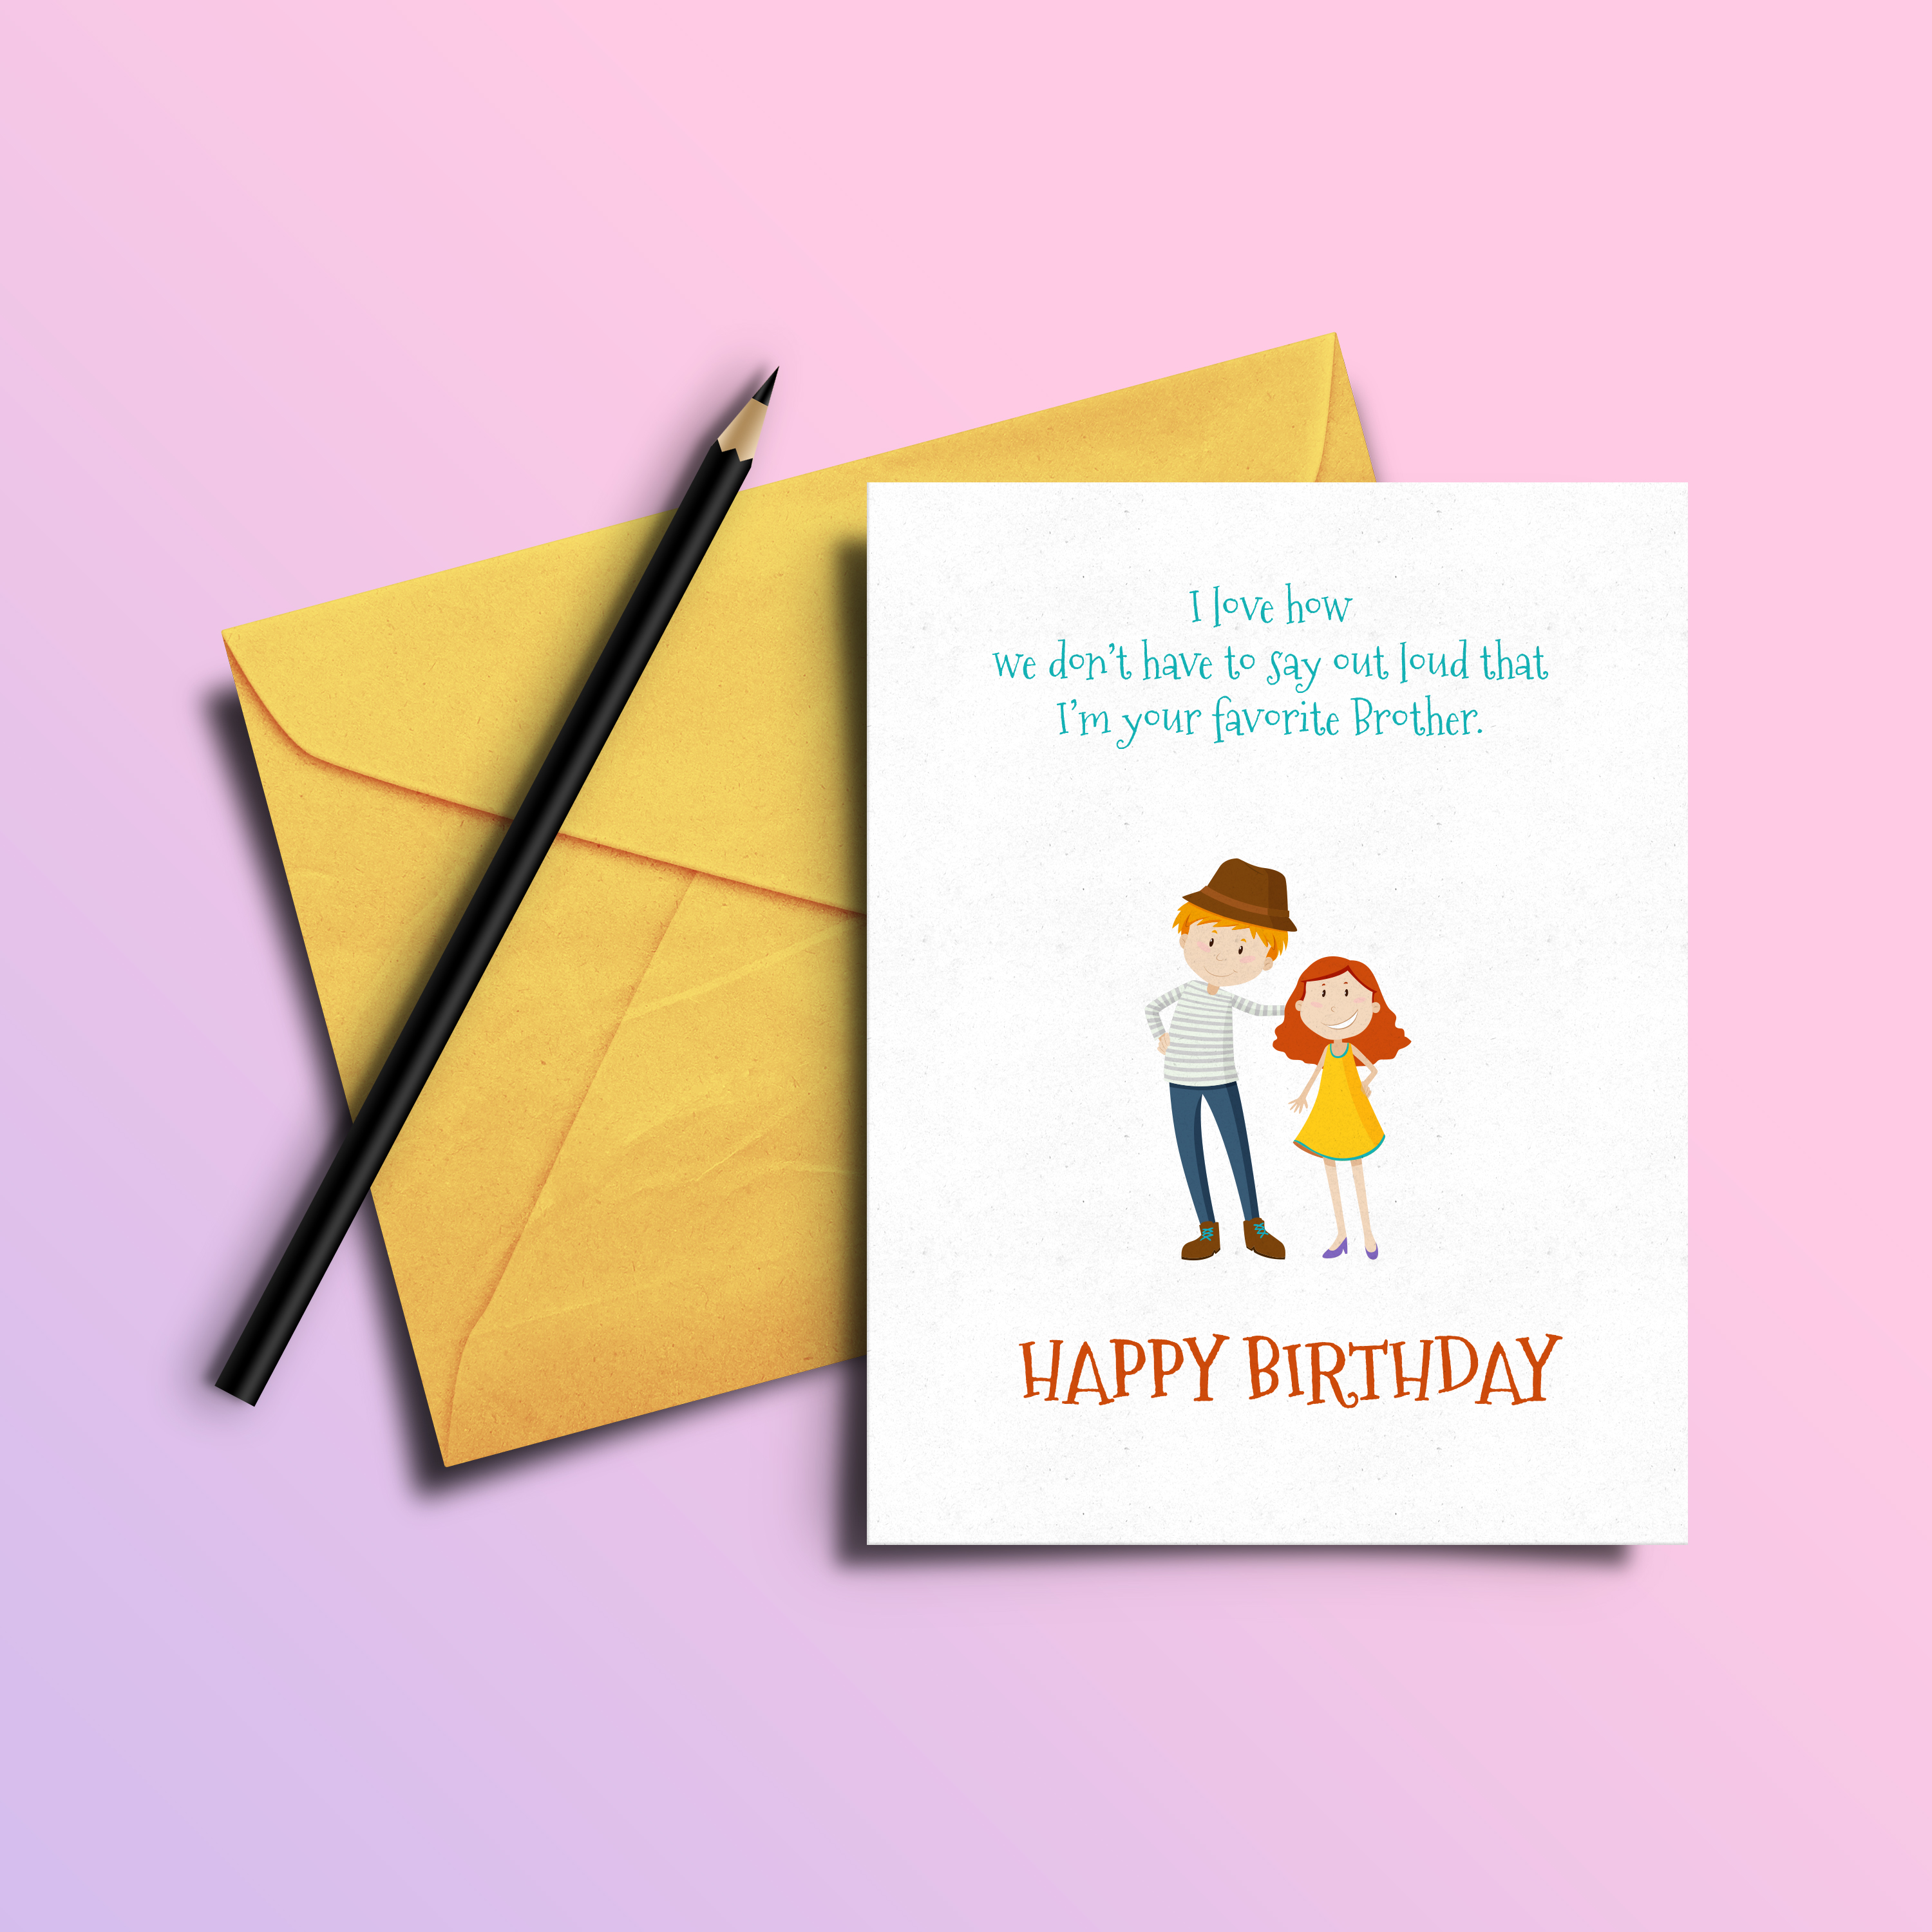 Insulting Birthday Card Sarcasm Funny For Brother 7435457234235 Ebay